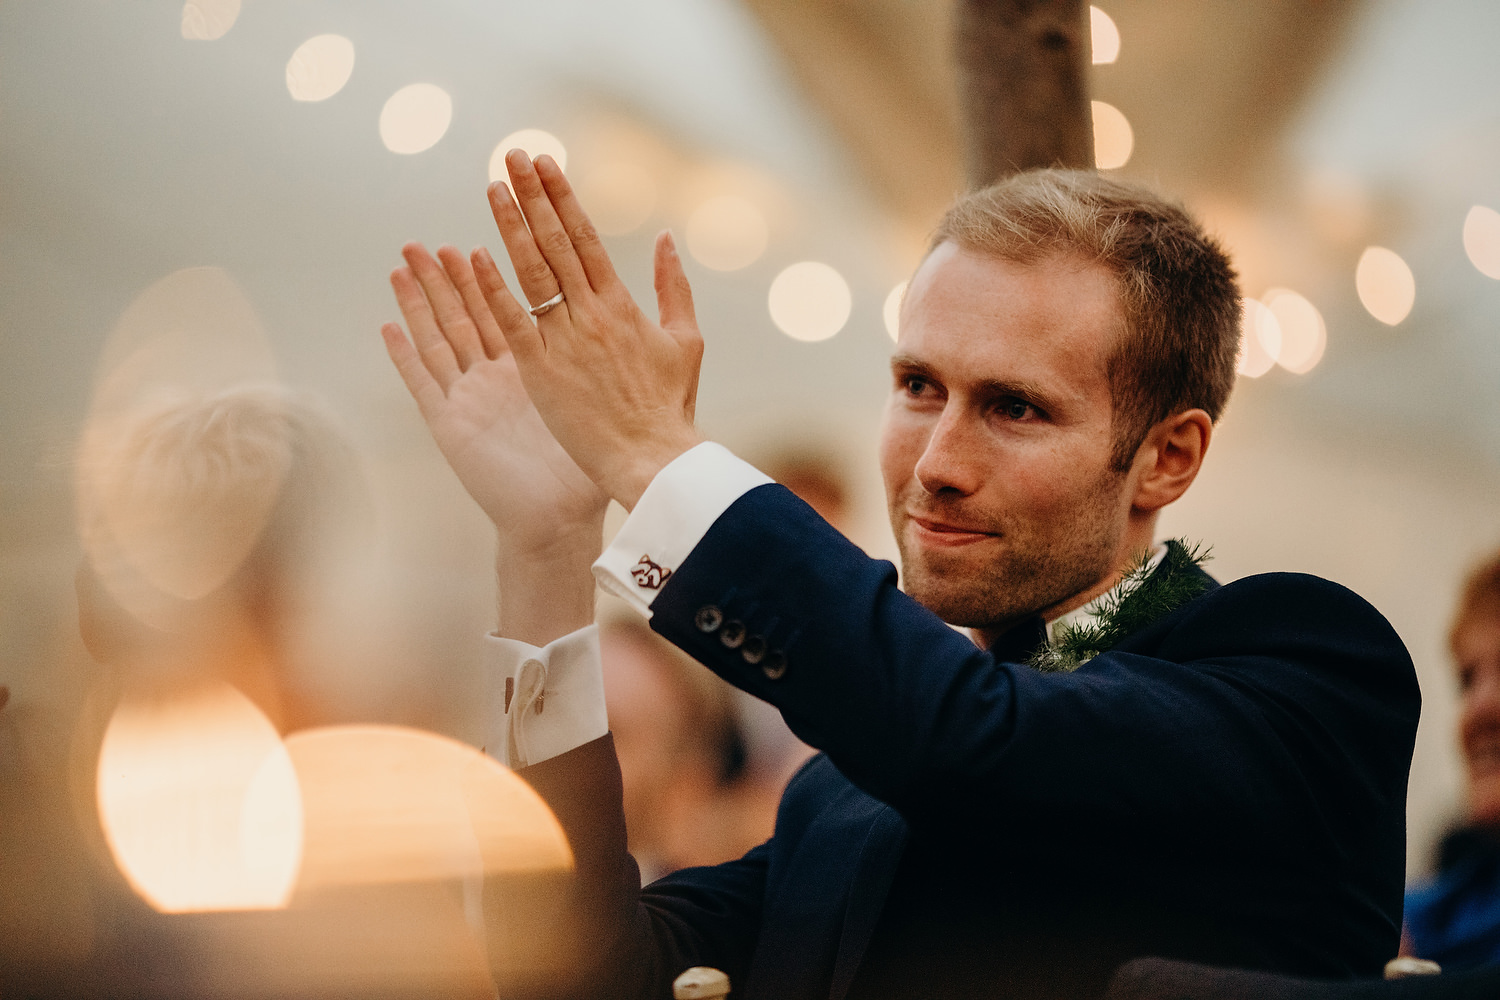 groom clapping to brides speech